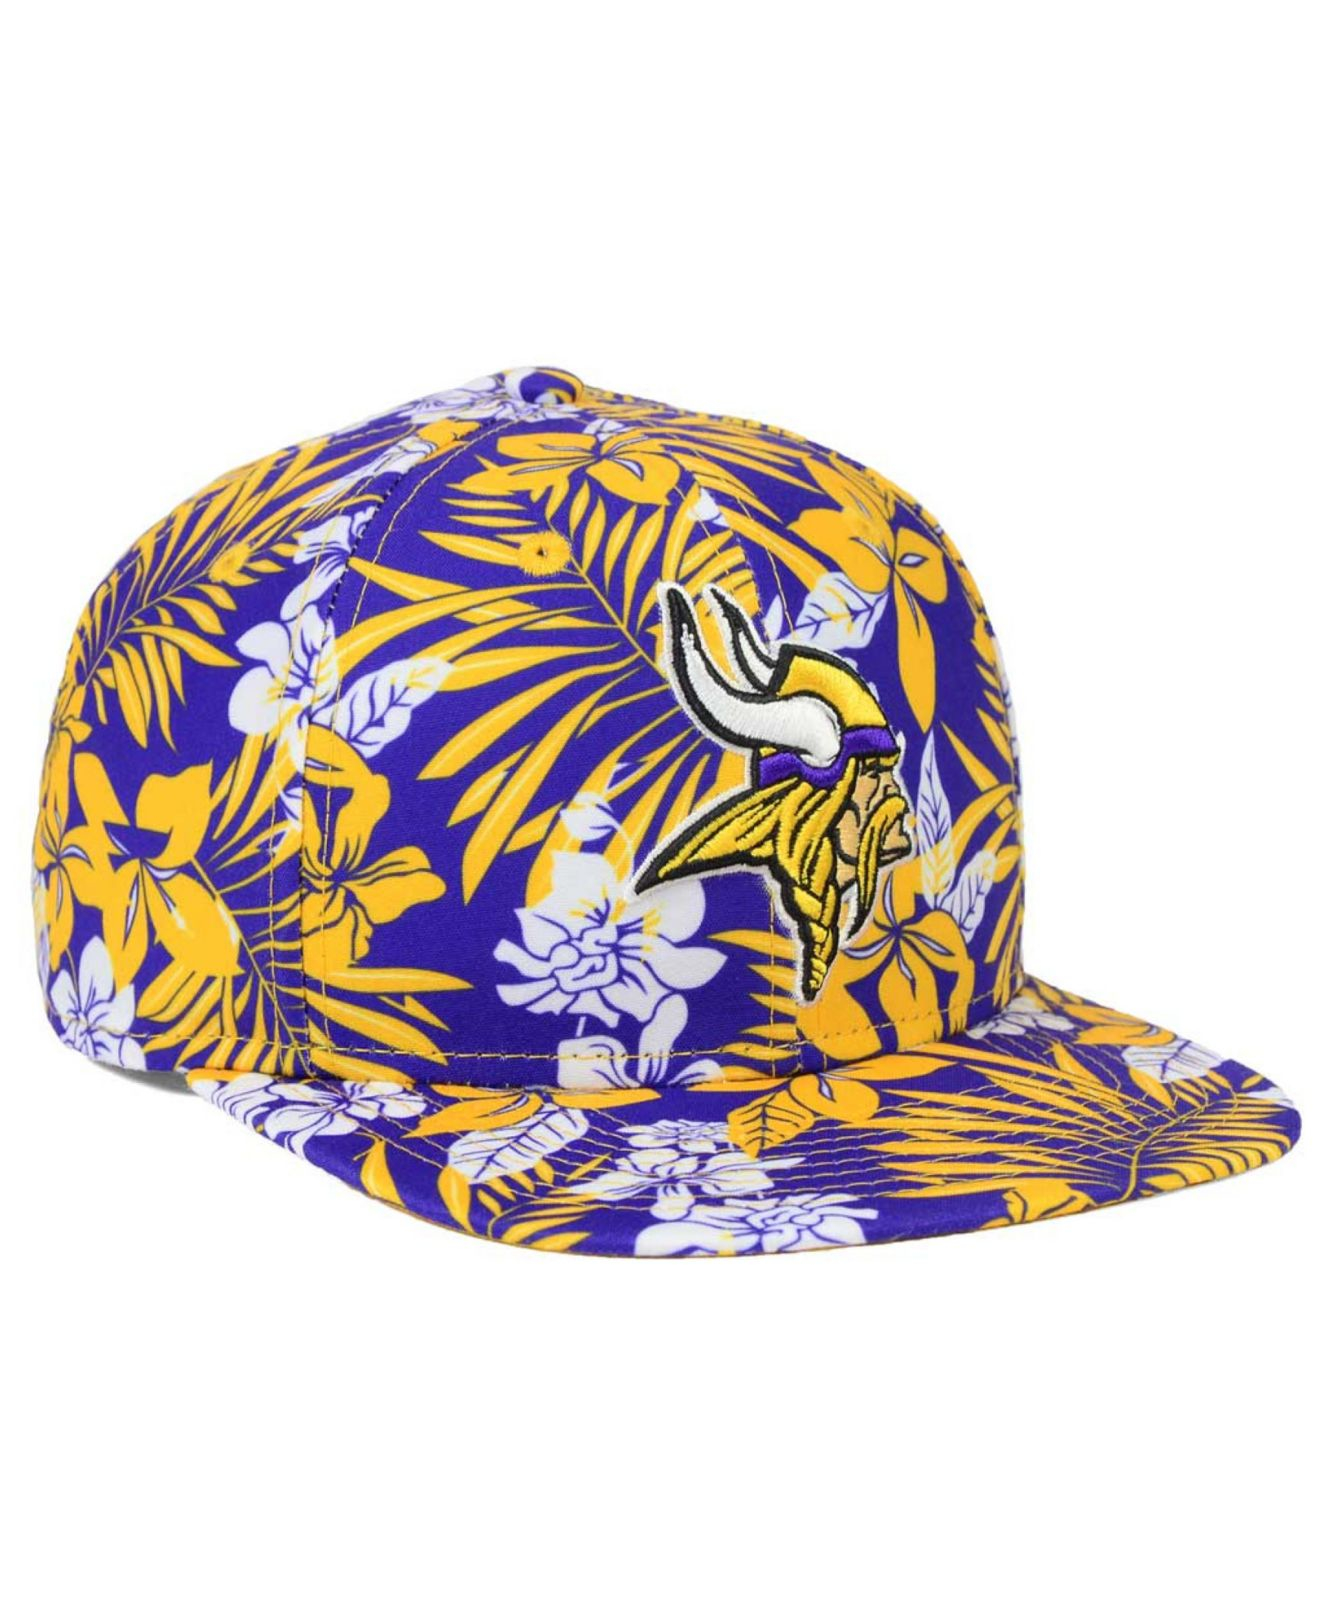 a2dffdbf76d51 free shipping new era minnesota vikings 9fifty 2012 nfl draft snapback hat  purple white 86031 f3aa4  sale lyst ktz minnesota vikings wowie snapback cap  in ...